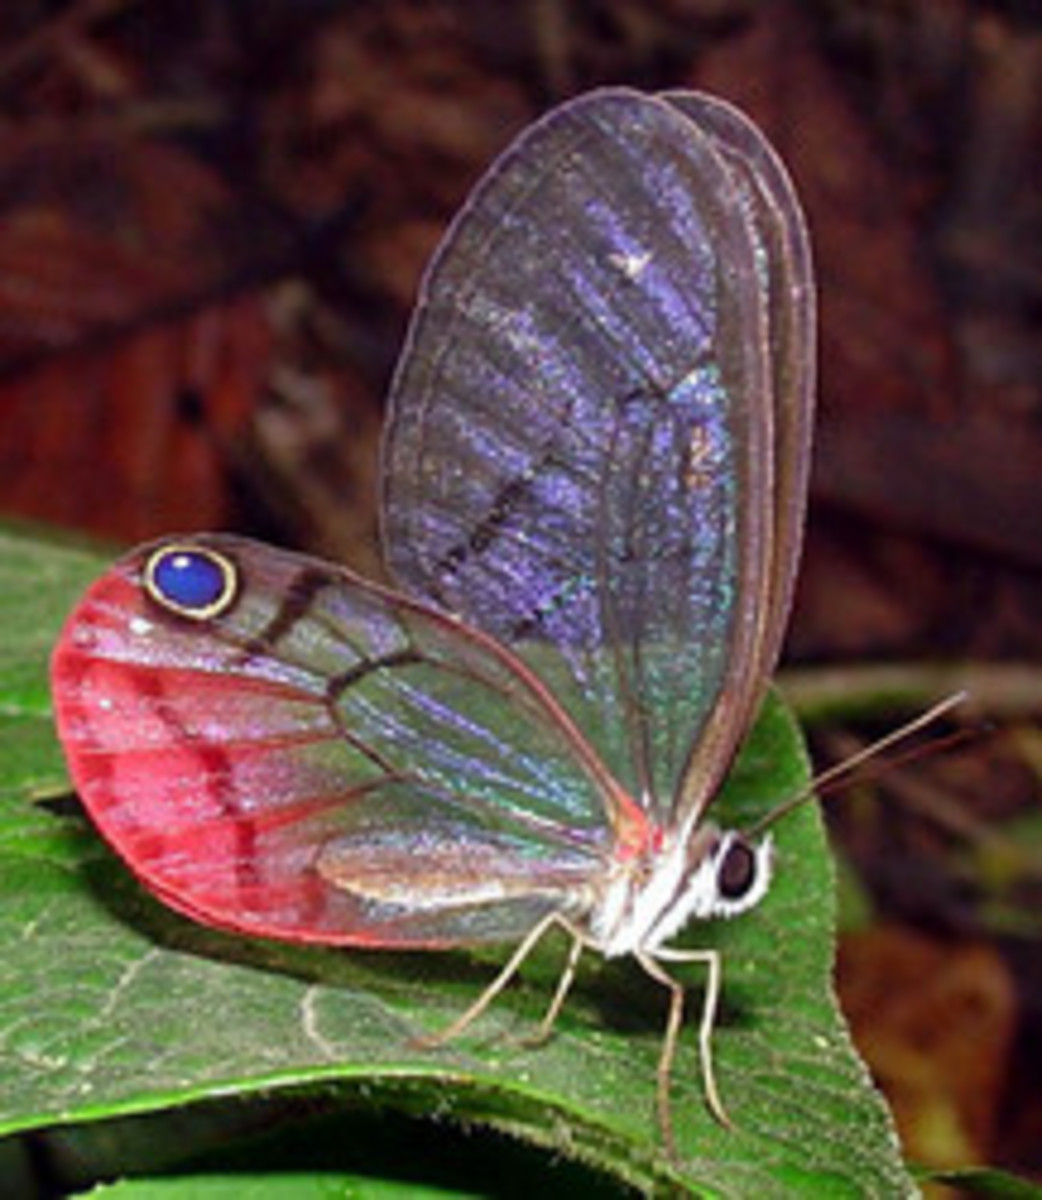 Some Important Species of Insects in Amazon Rainforest